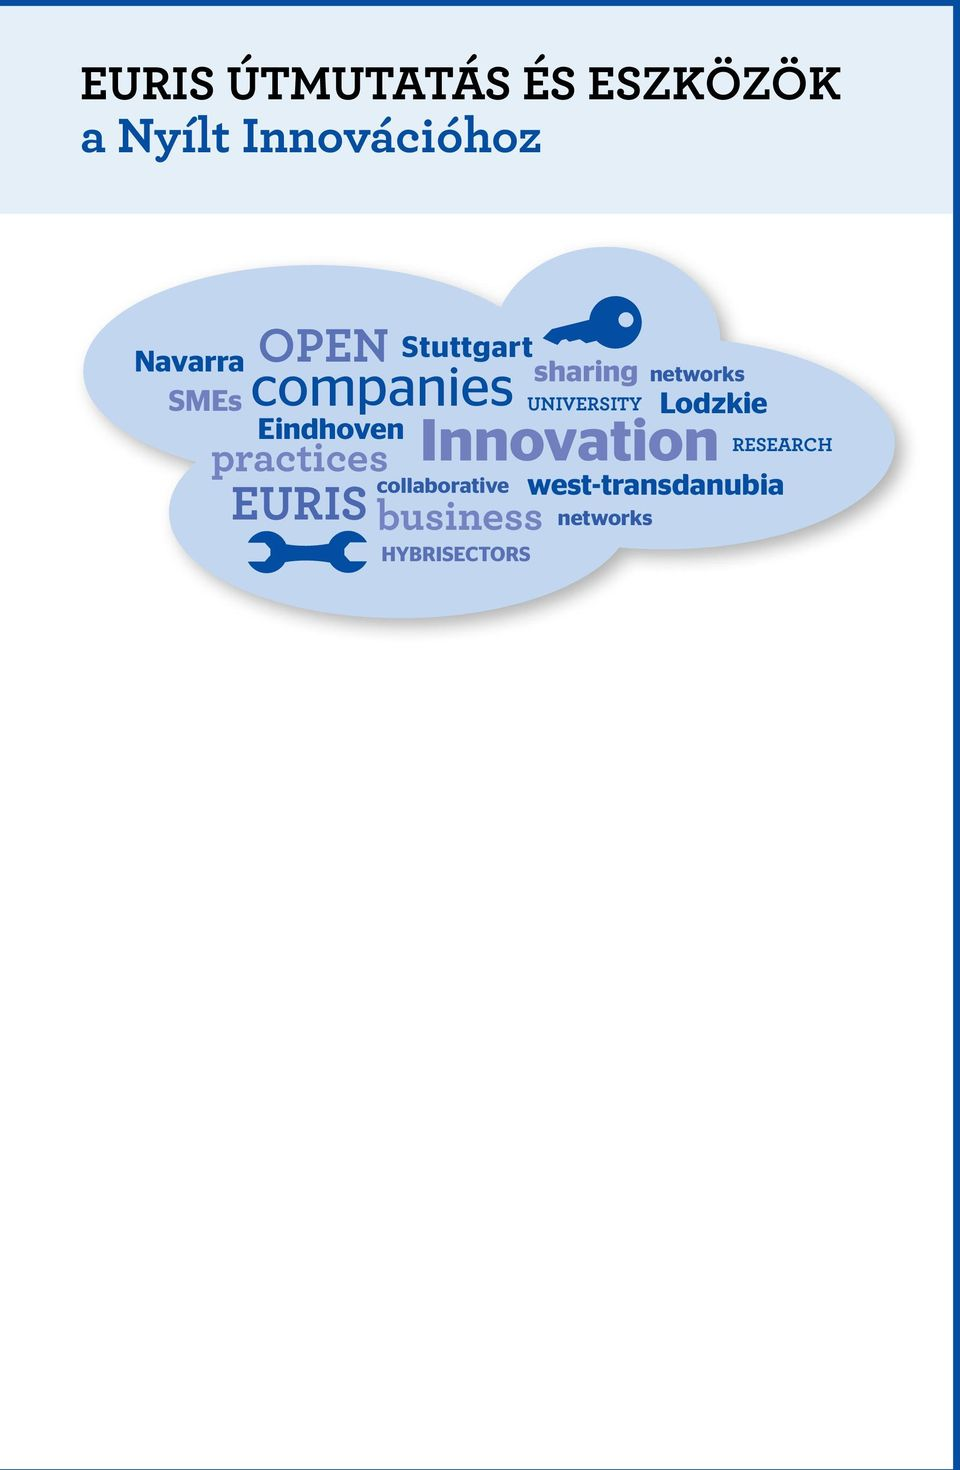 collaborative EURIS business Innovation hybrisectors